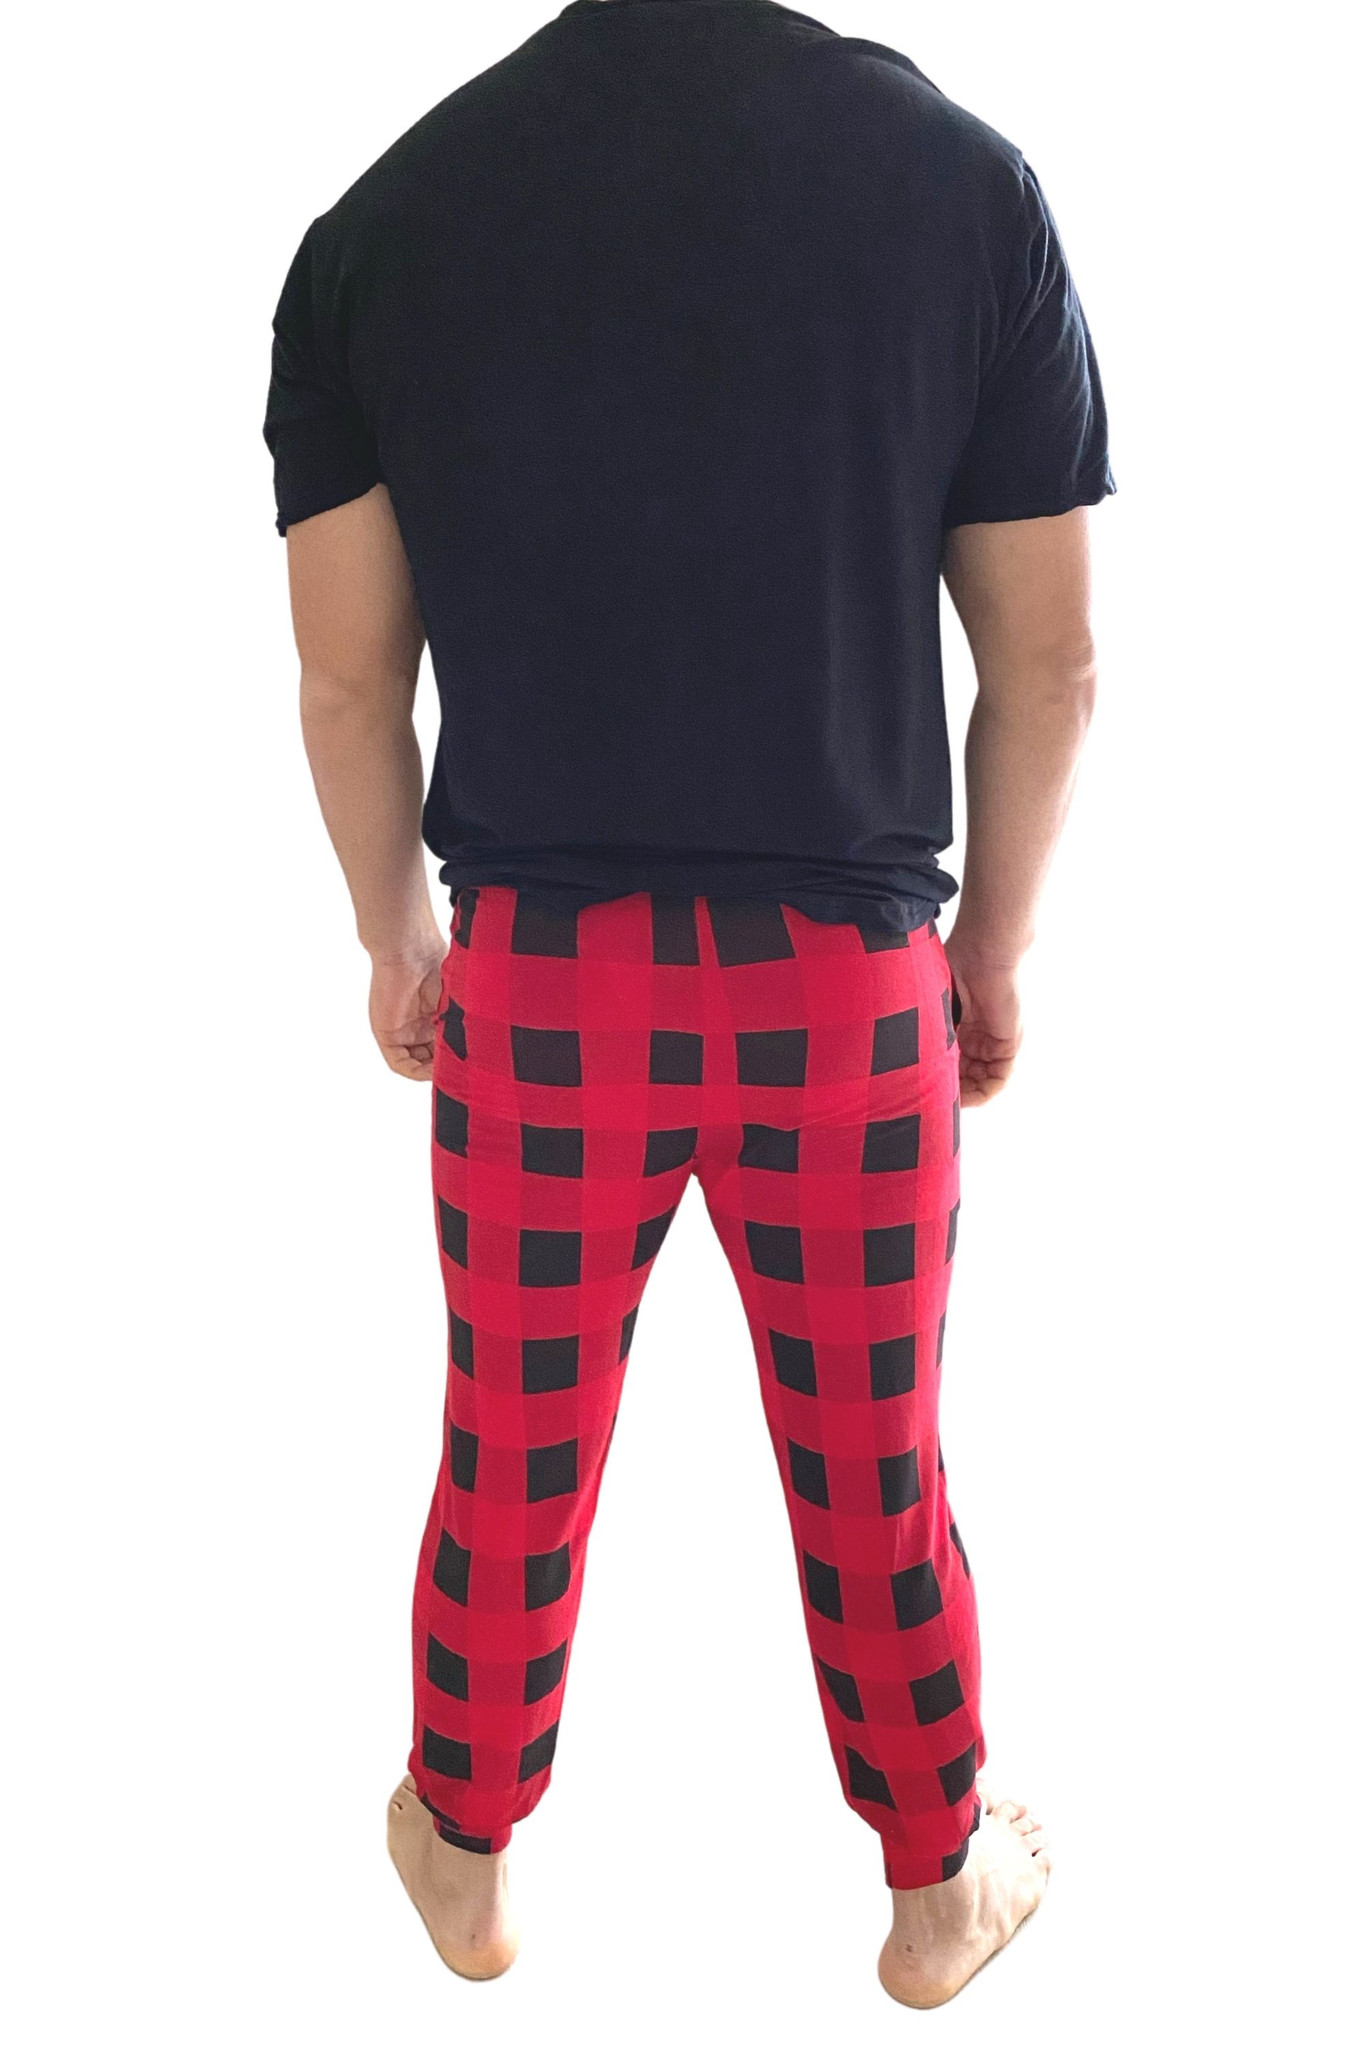 Cozy up in our exclusive buffalo check lounge collection for the whole family. Made from our signature buttery french terry that you know and love, get your hands on these sets while you can! This Mens set has a comfortable tapered pant, and a basic crew neck t-shirt.  Fits True to size - generous.  No need to size up.